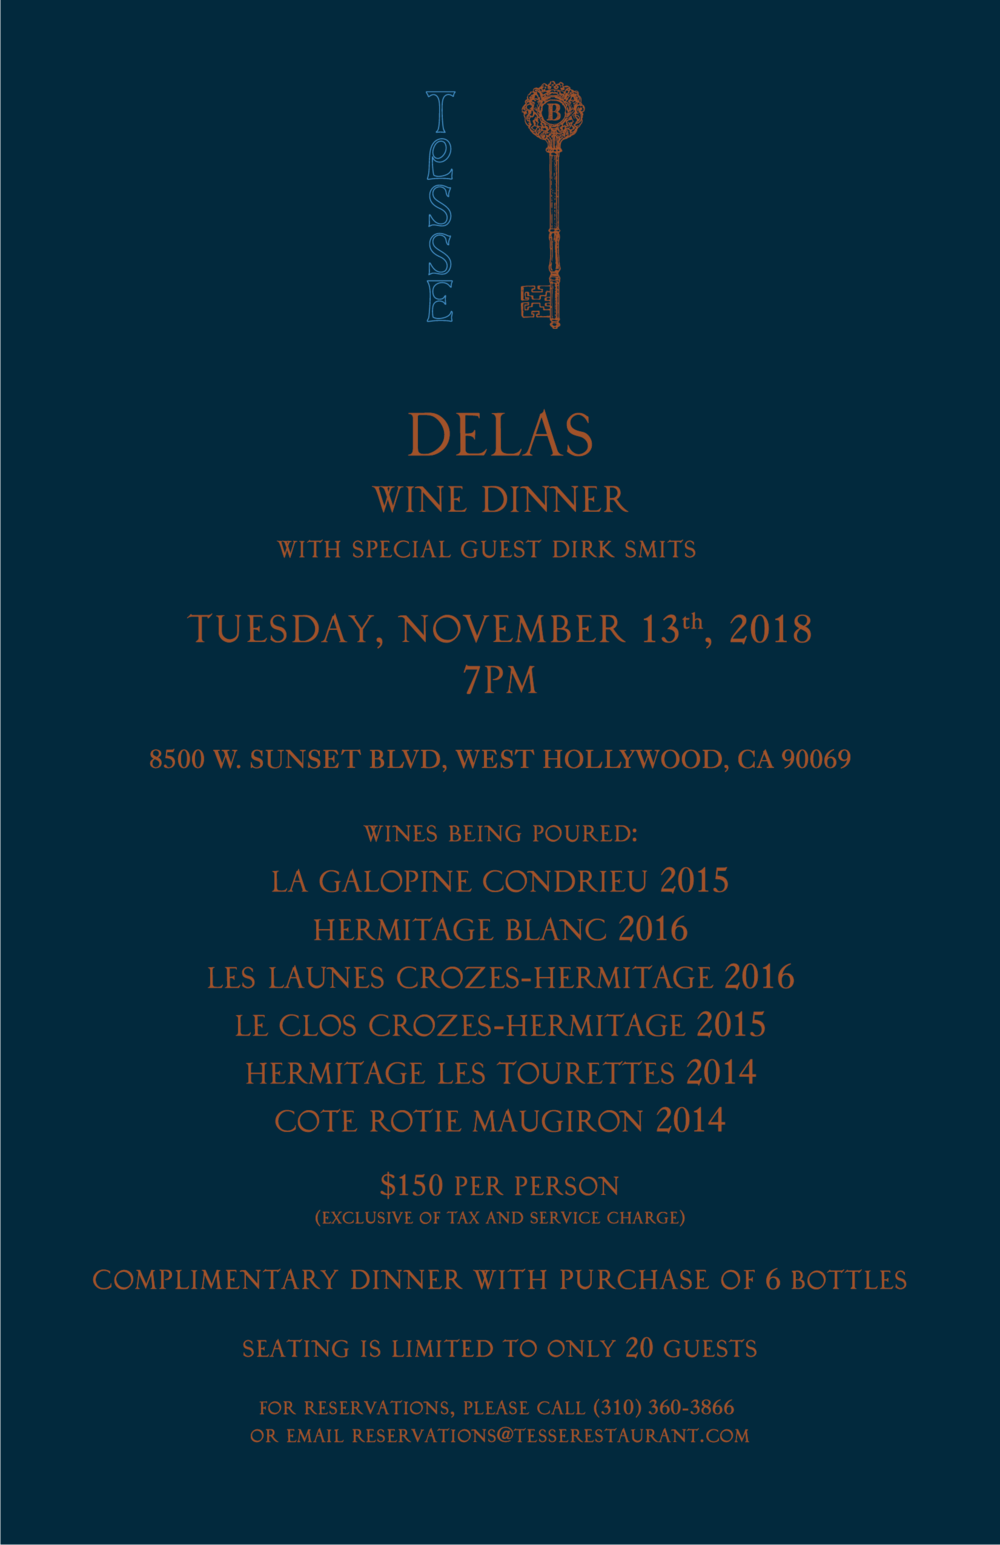 Delas Wine Dinner Invite.png